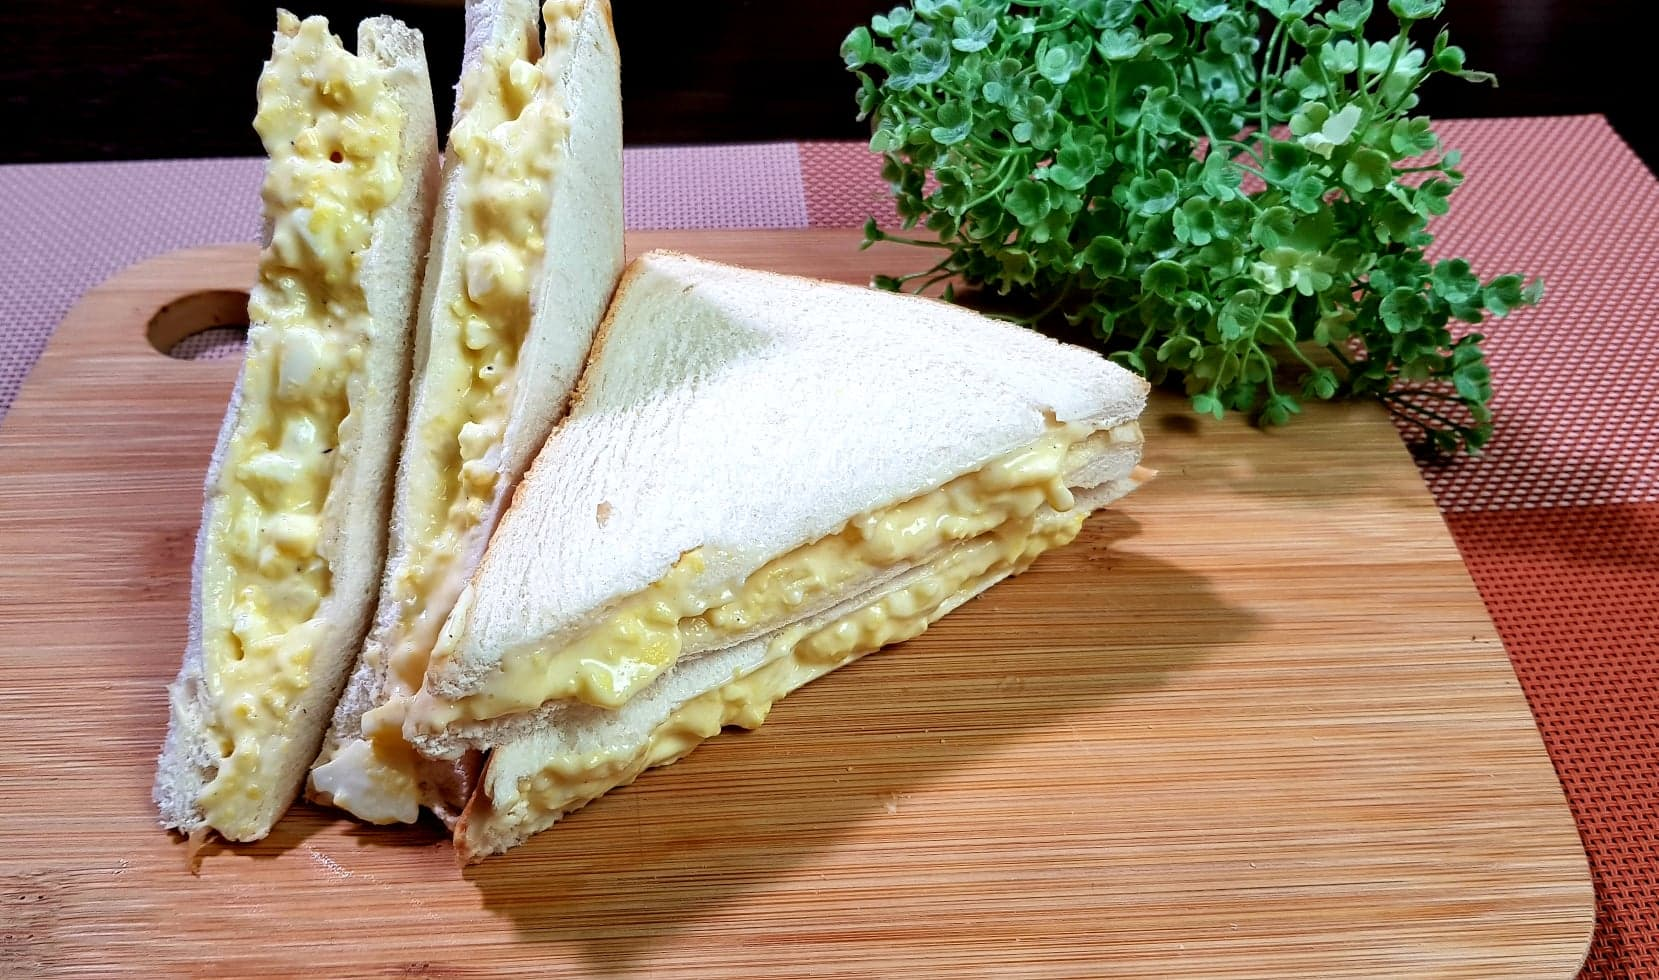 How to Make Egg Sandwich at Home – Easy Pinoy Merienda Recipes